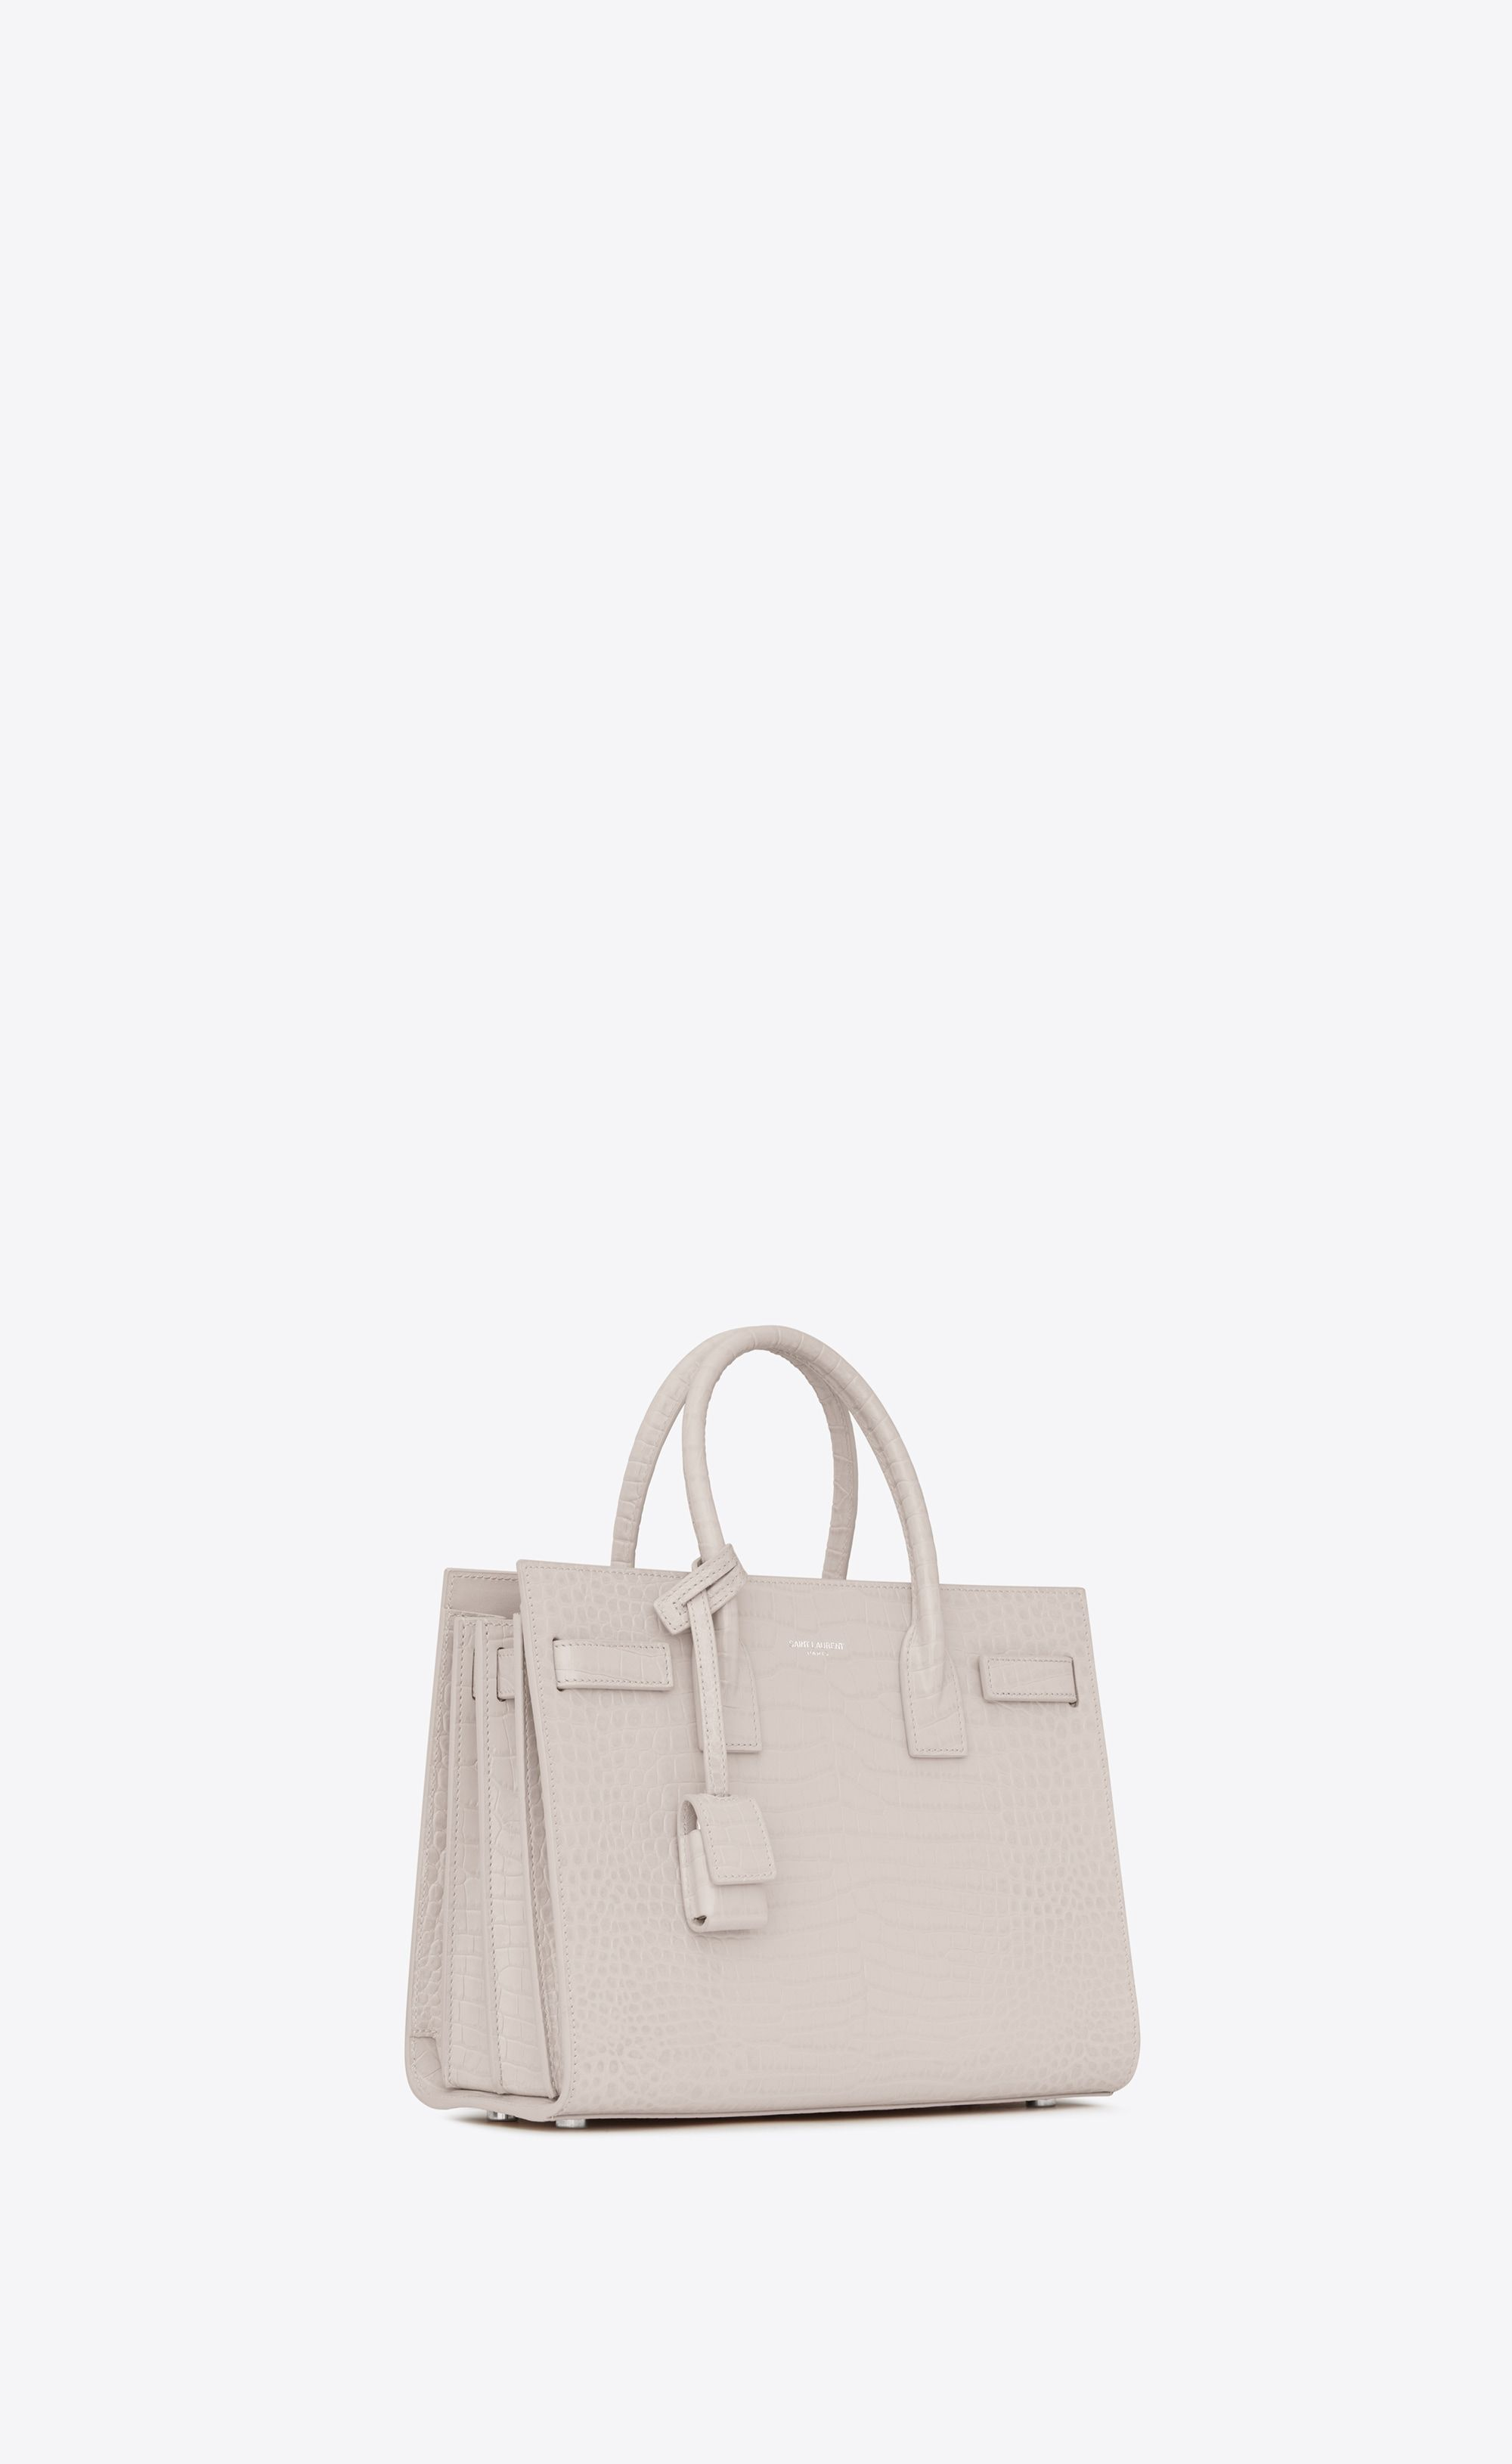 70084064 Saint Laurent - Classic Baby Sac de Jour bag in cream crocodile ...